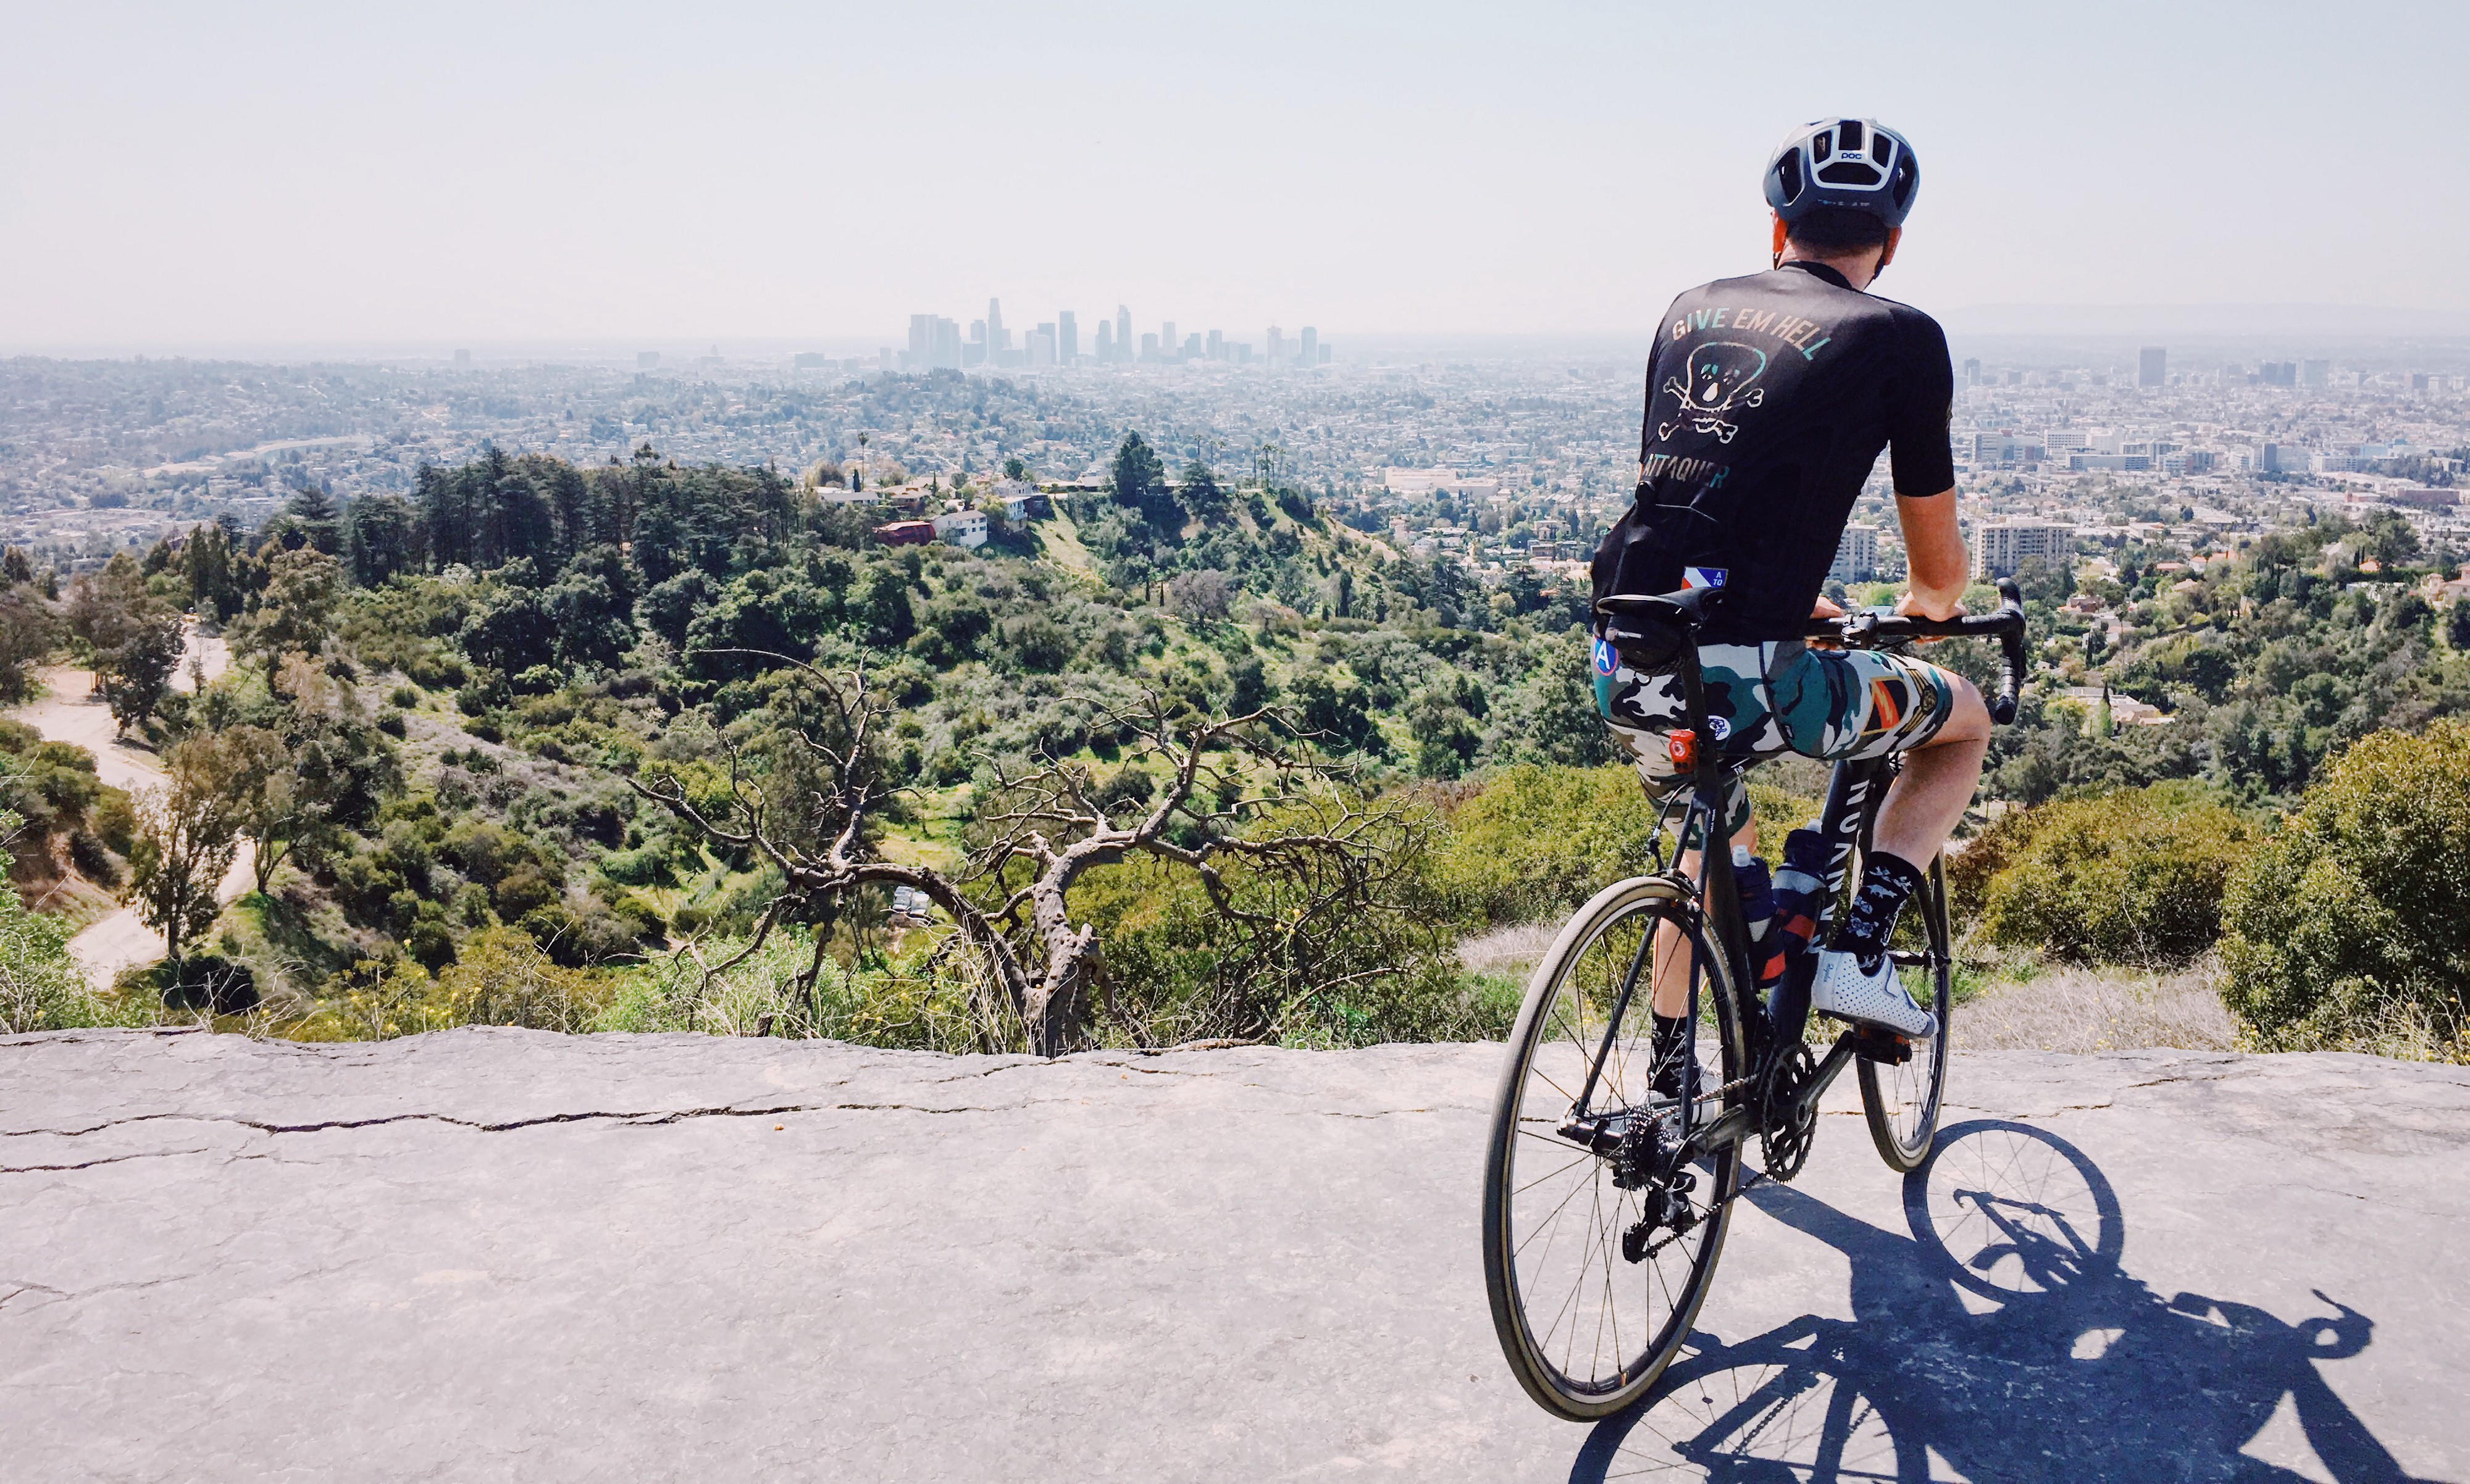 A cyclist poses at the Griffith Park Helipad, which overlooks the skyscrapers of downtown Los Angeles